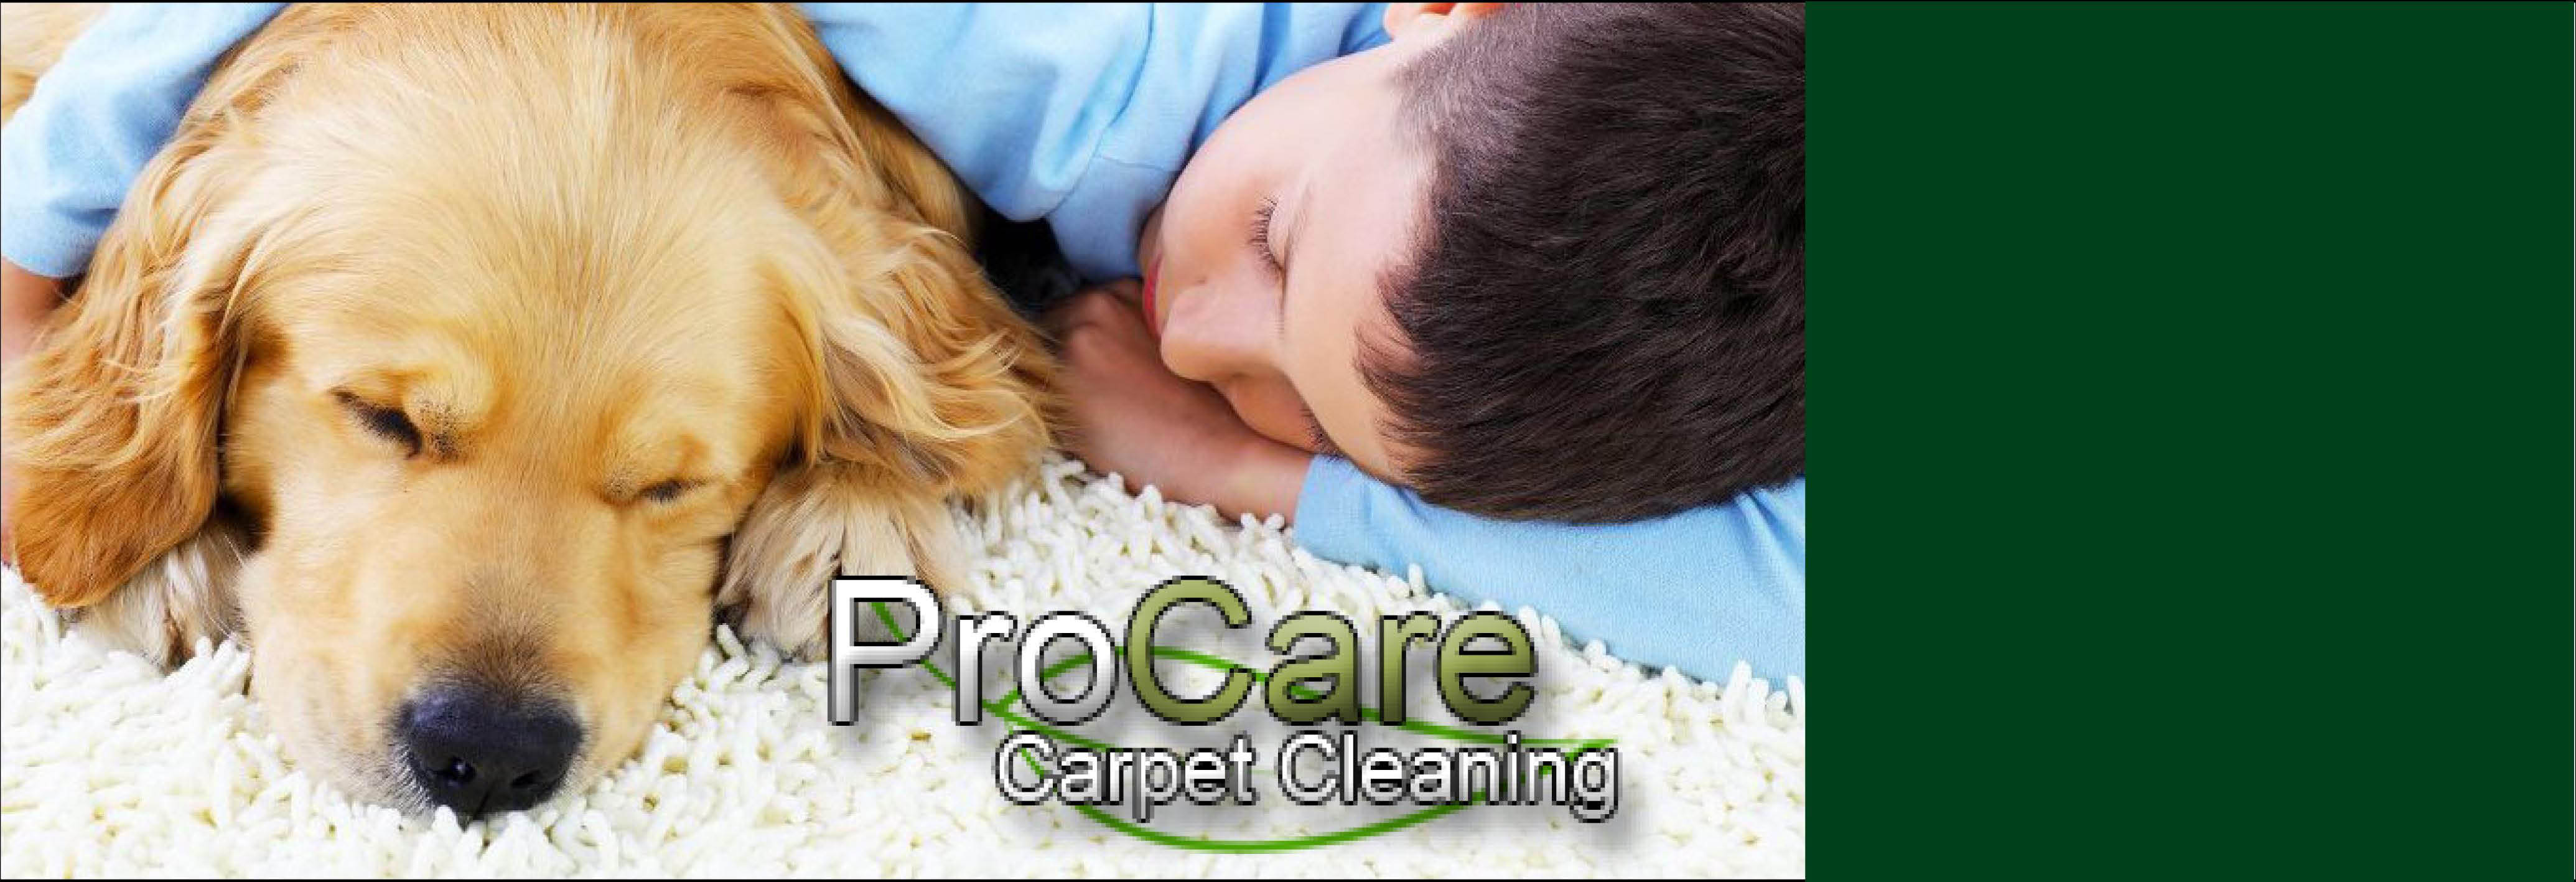 Procare Carpet Cleaning Serving Davis,Morgan and Weber Counties.